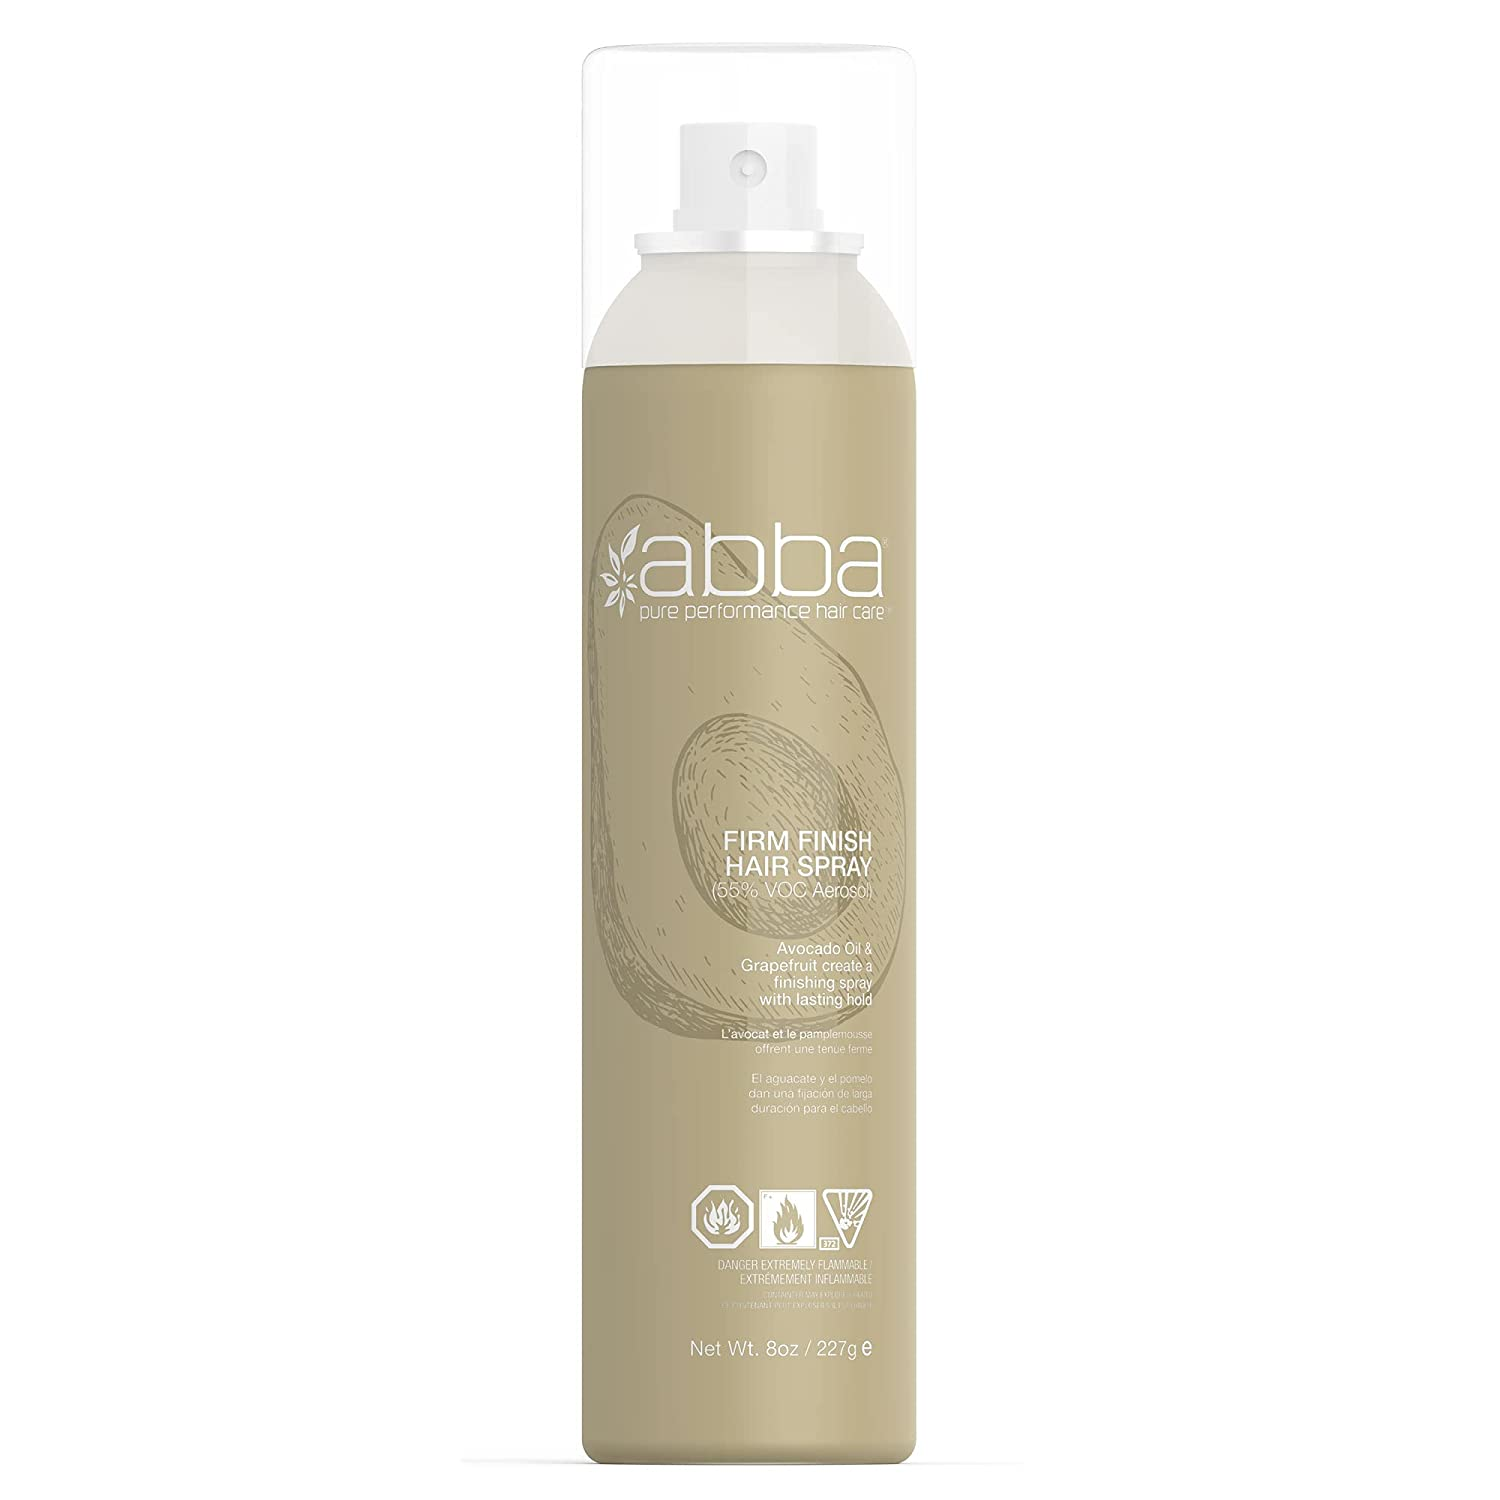 Limited time sale ABBA Firm Finish Hair Spray Super intense SALE oz 10